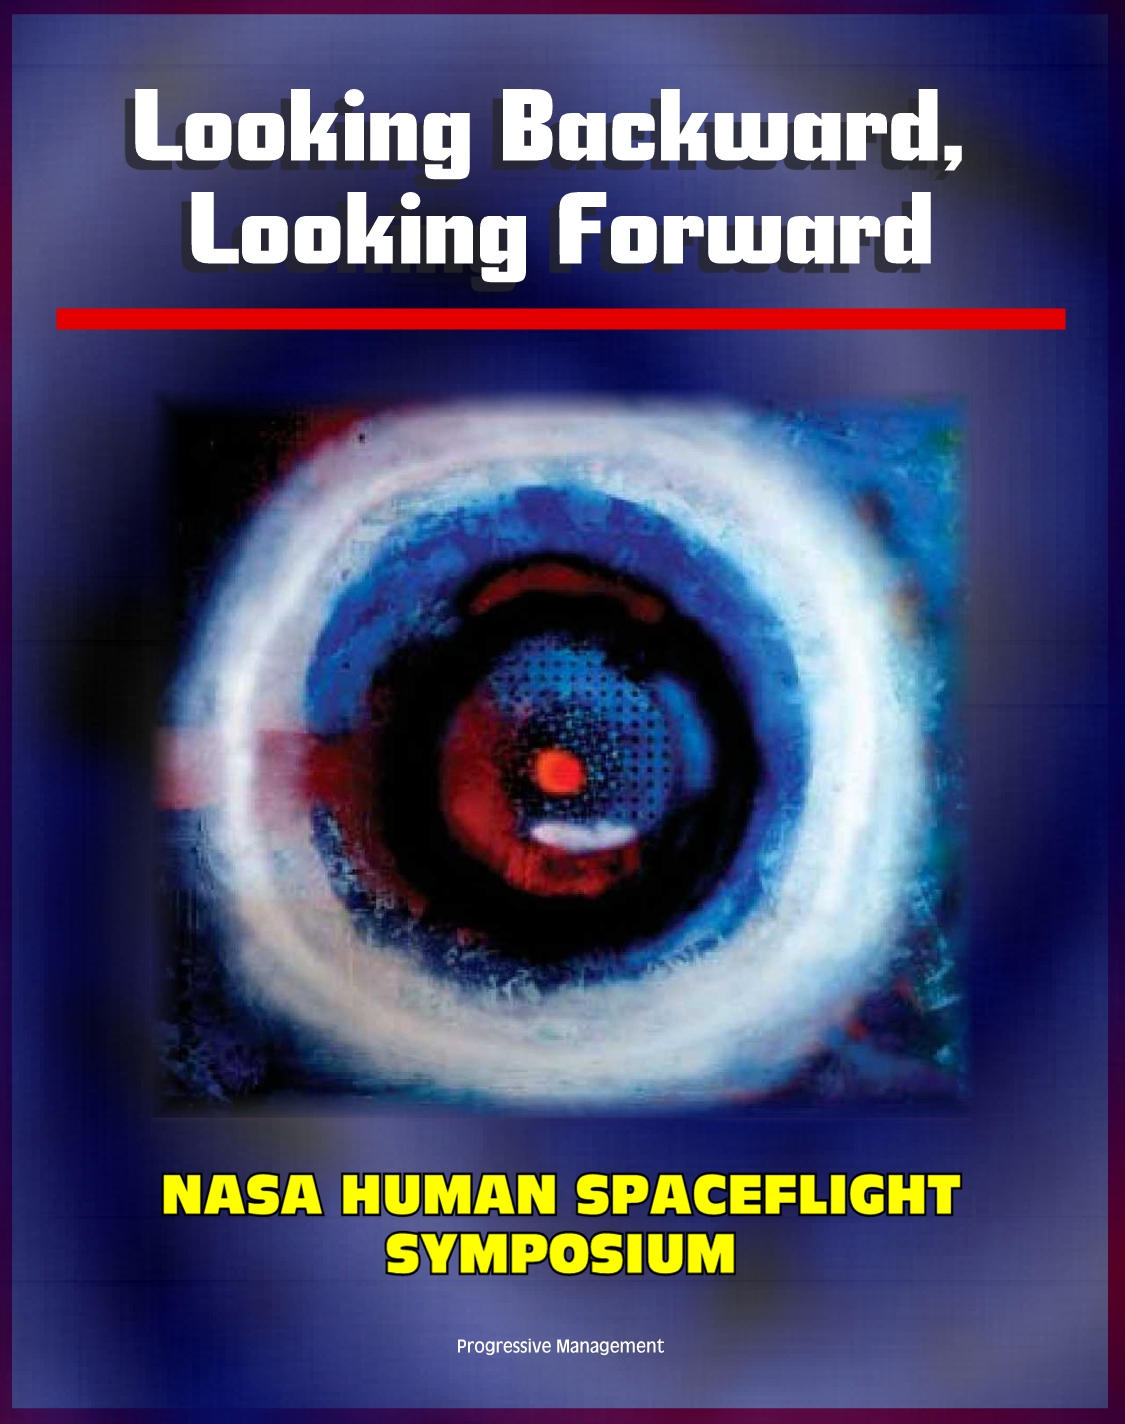 spaceflight essay The space race essay 2705 words | 11 pages thesis: the race into space changed the course of history the scientific exploration united nations and captivated the world.